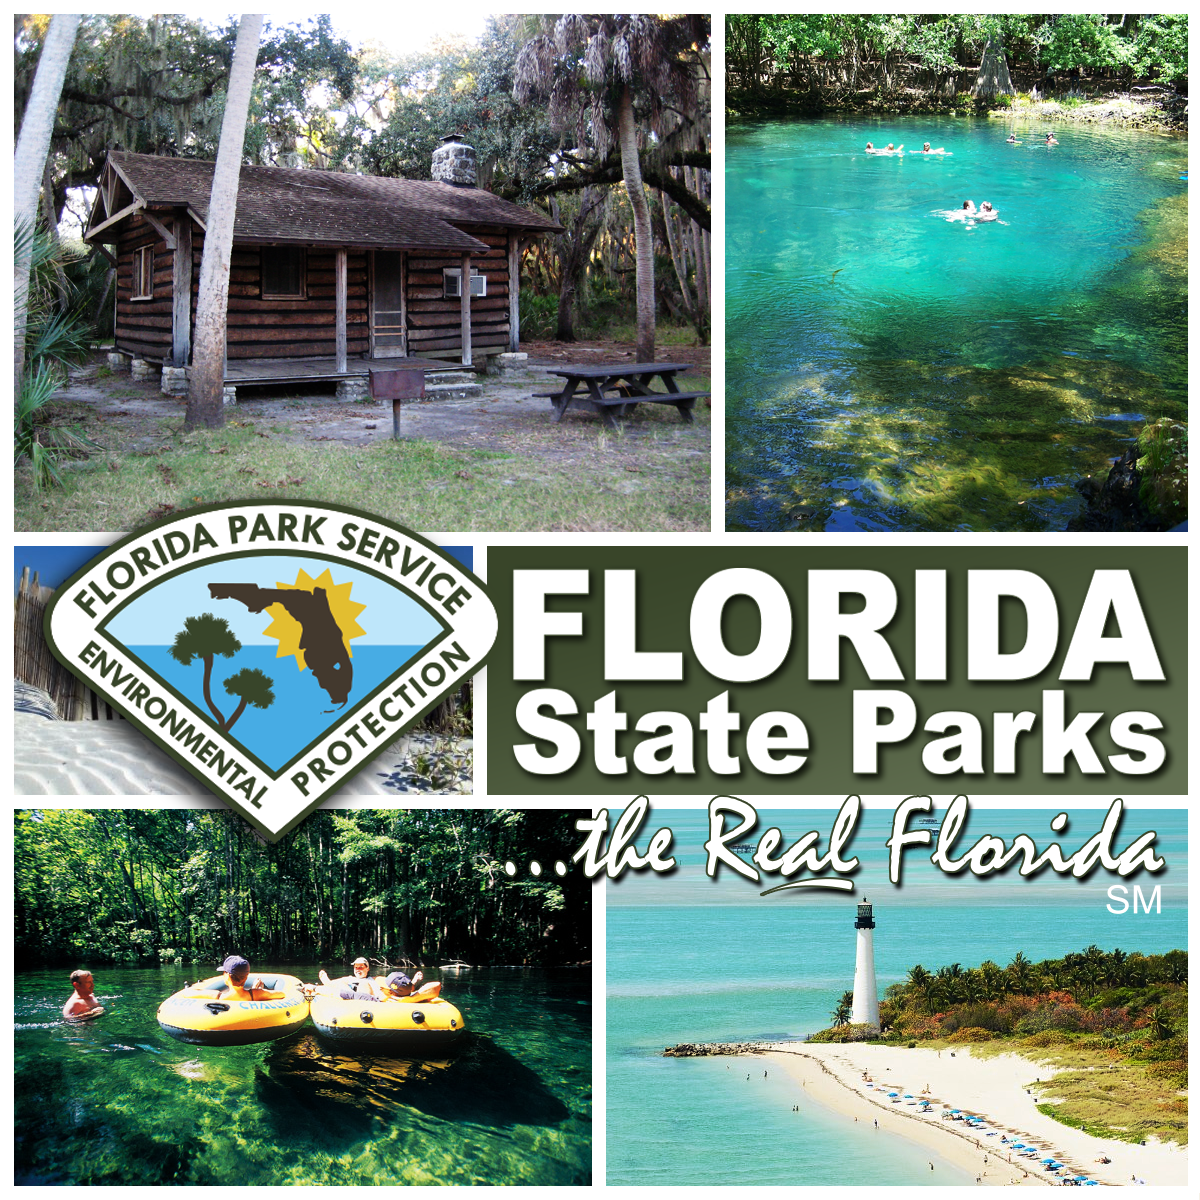 Places To Visit In Florida In April: Free Admission To Florida State Parks This Veteran's Day